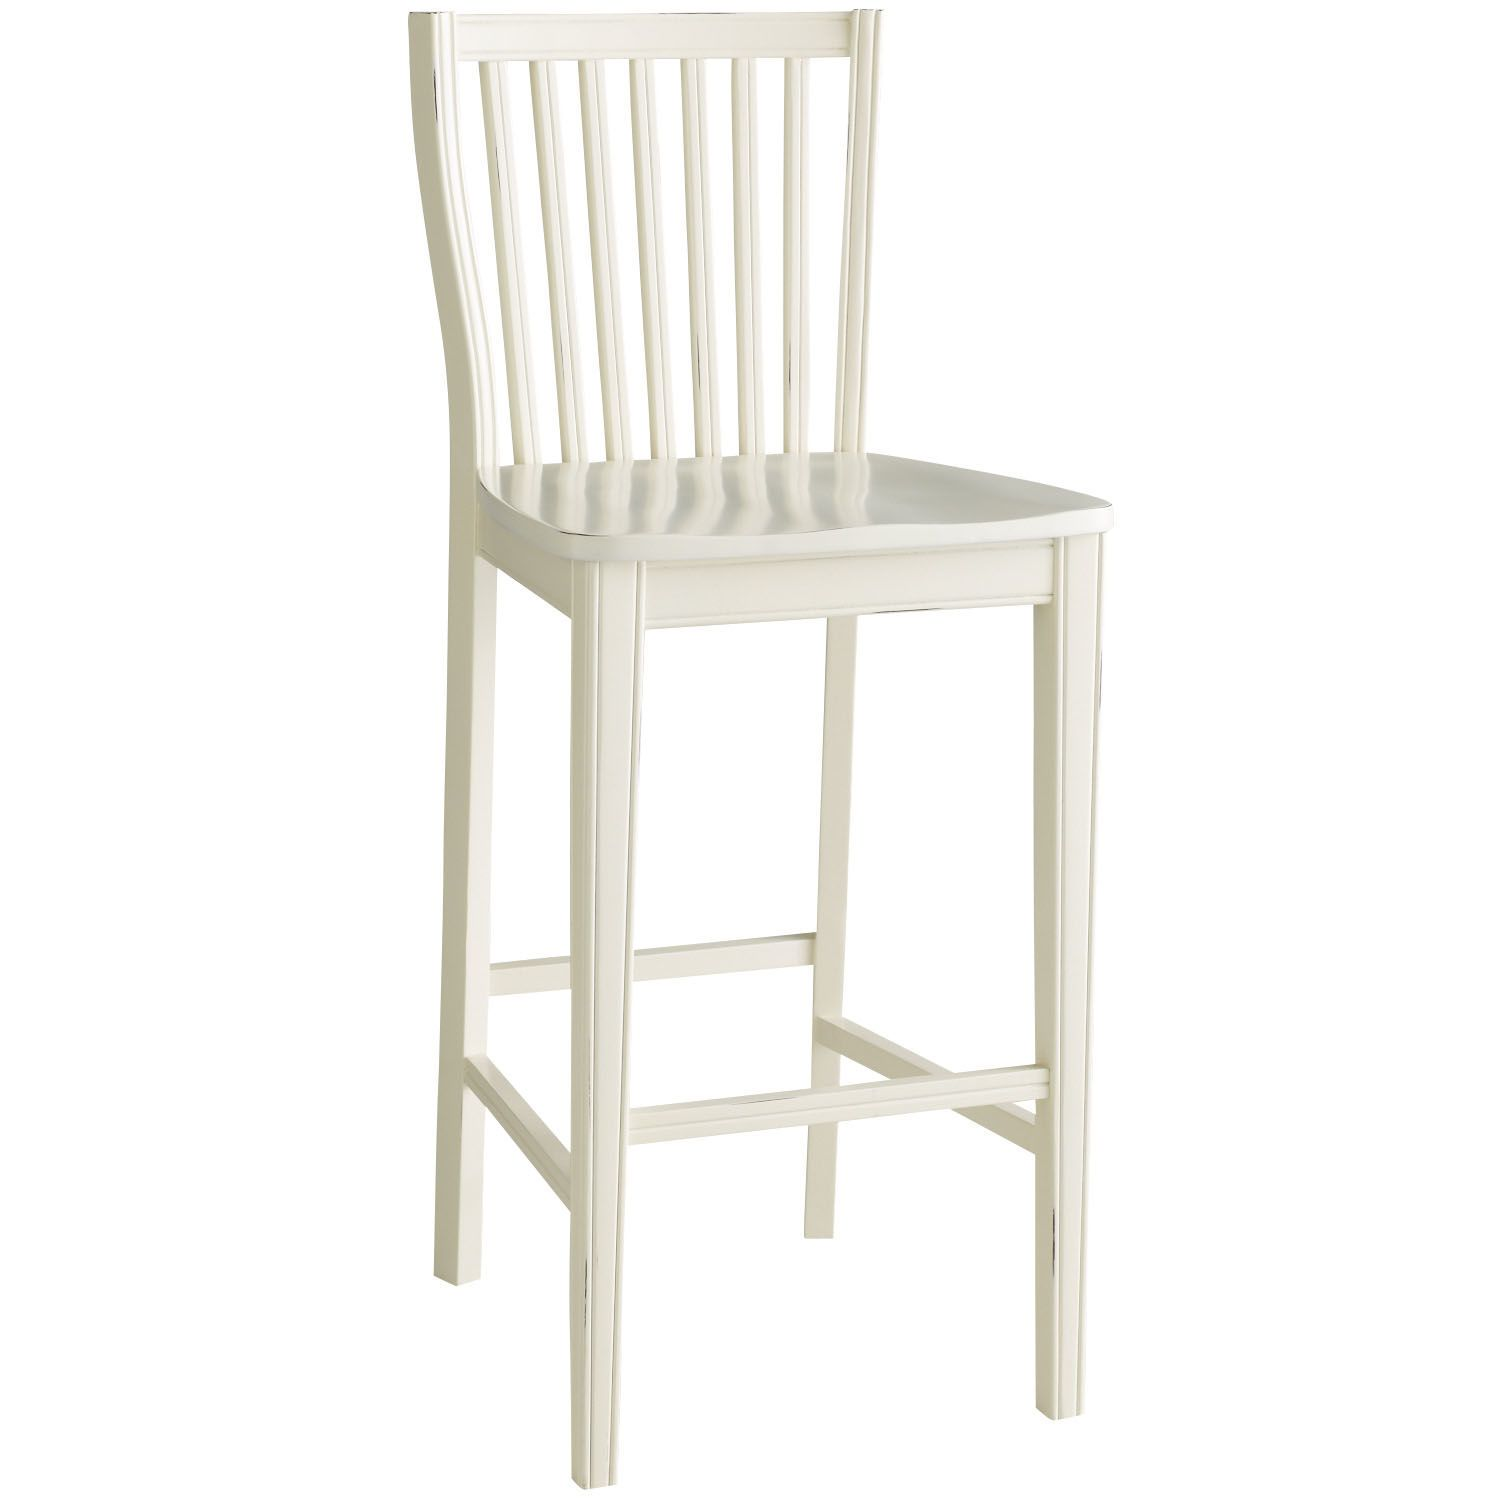 Ronan Antique White Counter & Bar Stool